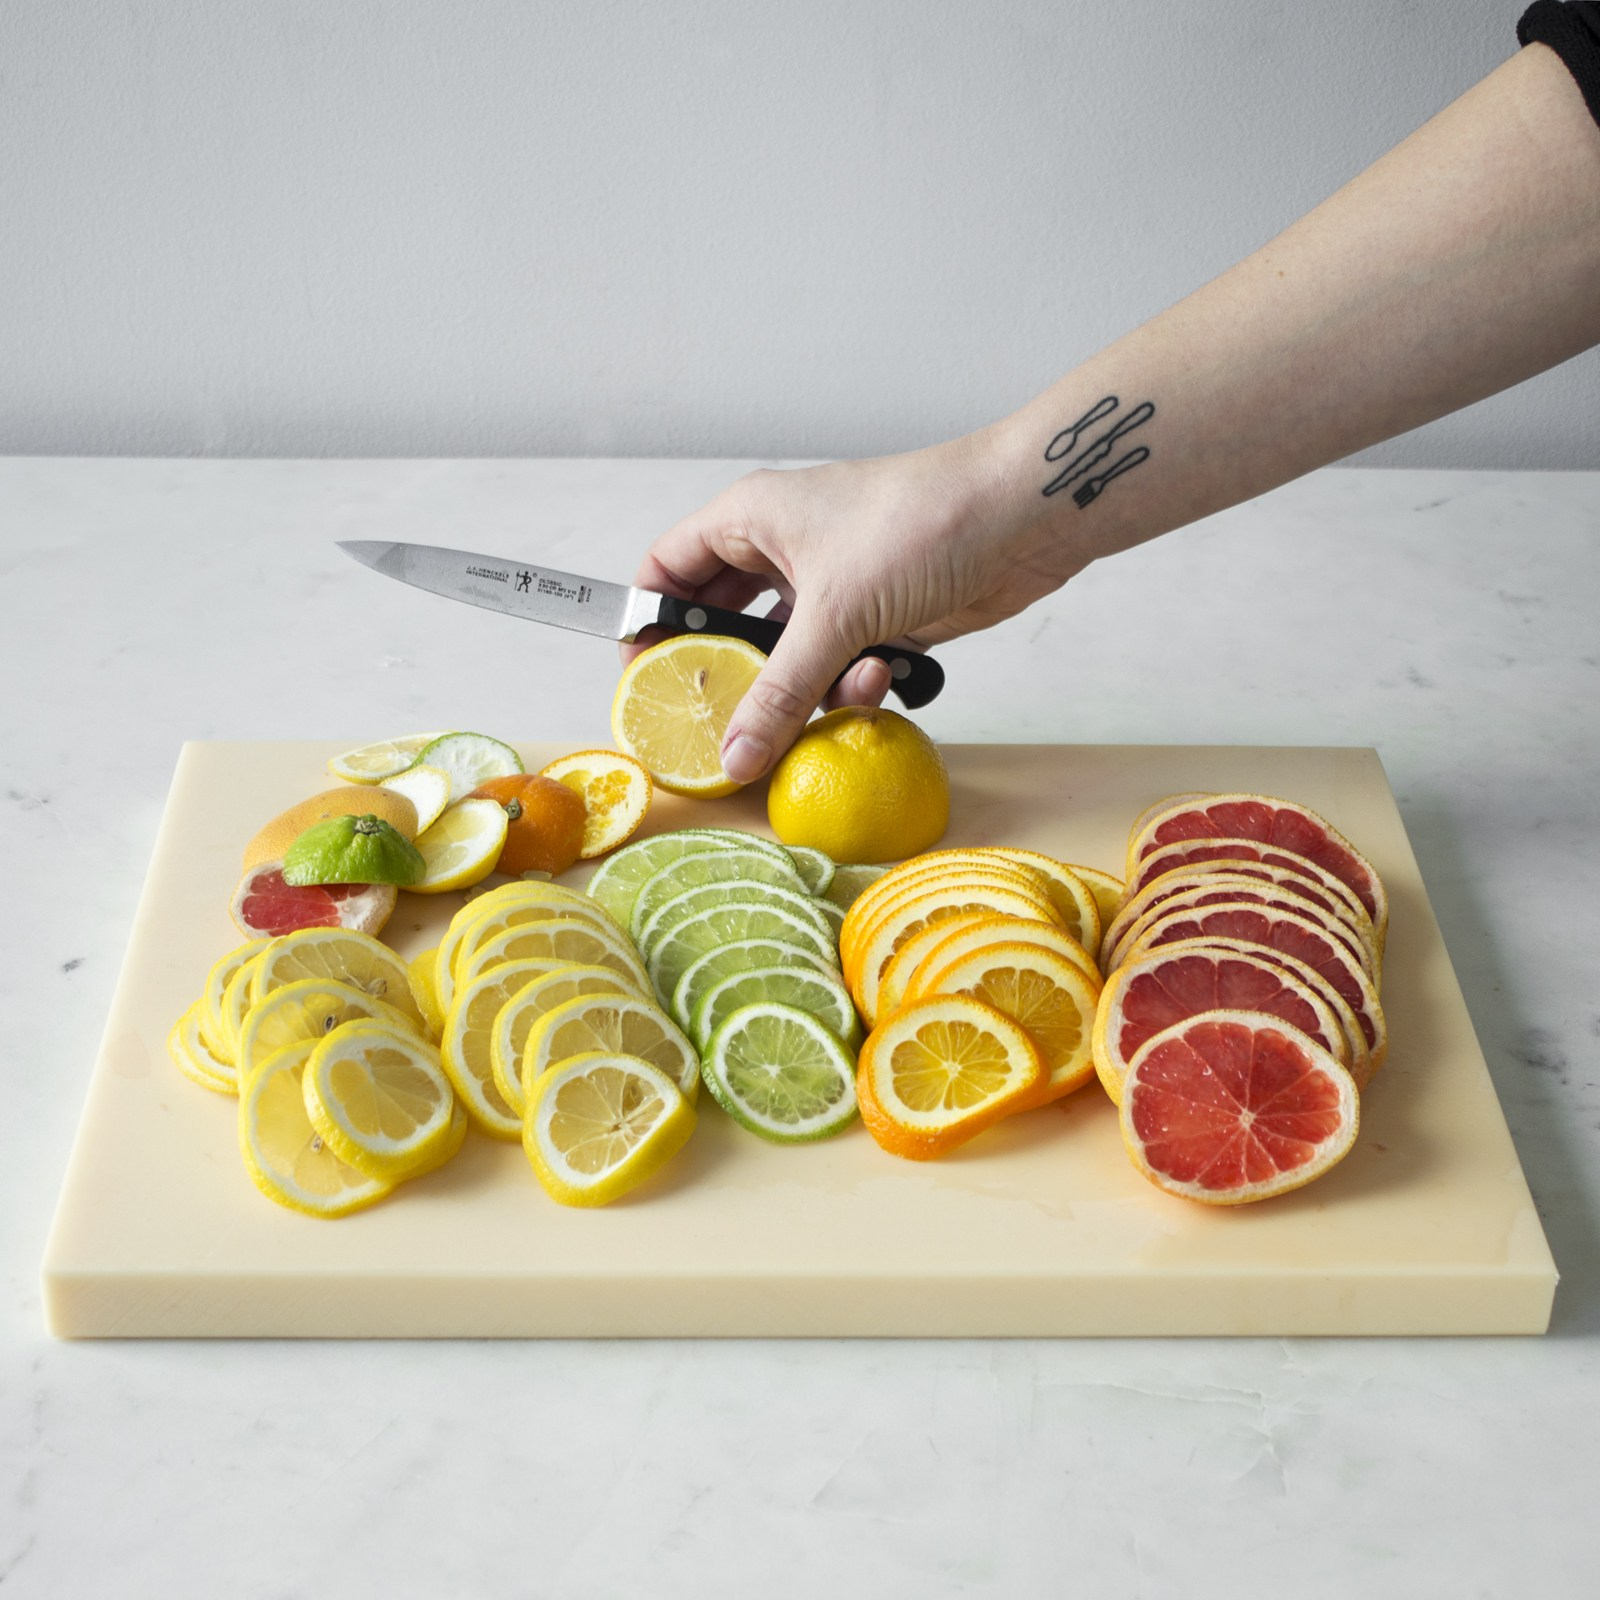 a hand holding a knife and placing lemon on cutting board with yellow, green,orange,red sliced citrus fruits